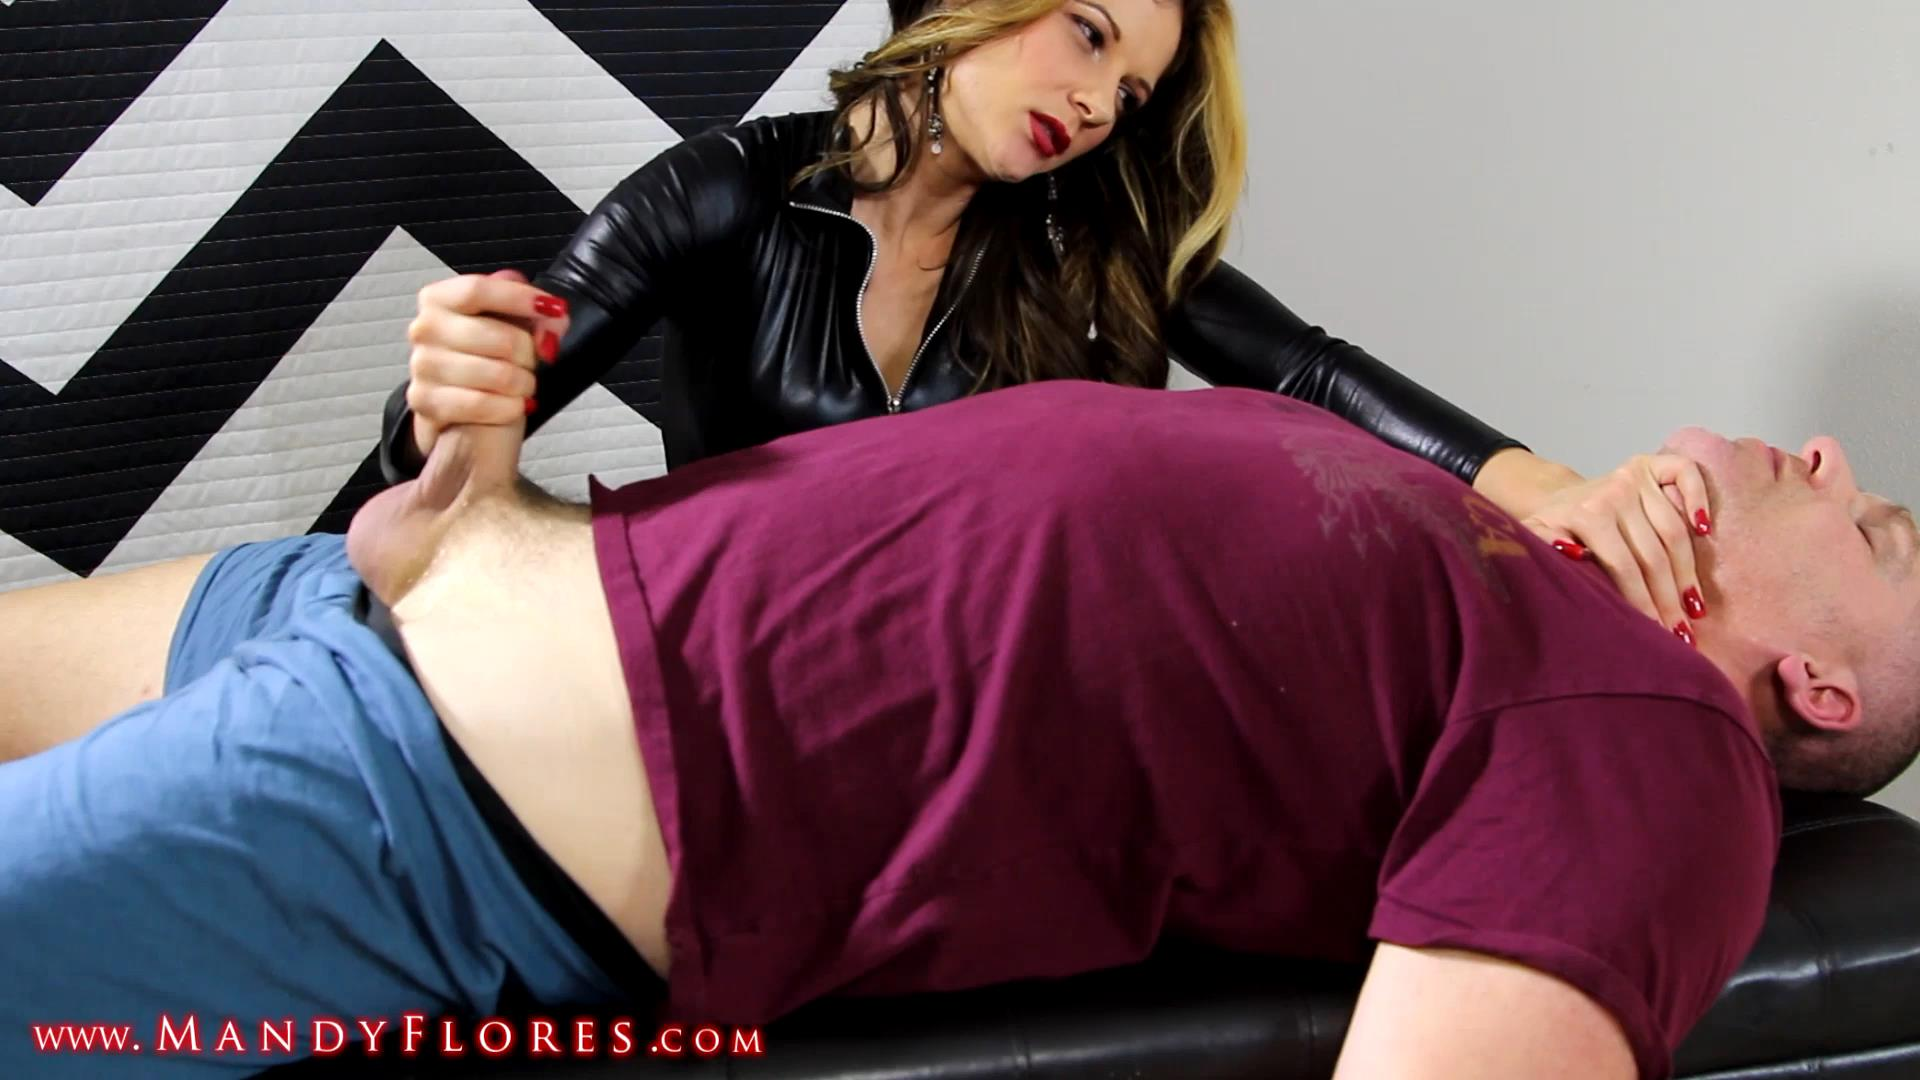 Sensual karate hands handjob feat Mandy Flores